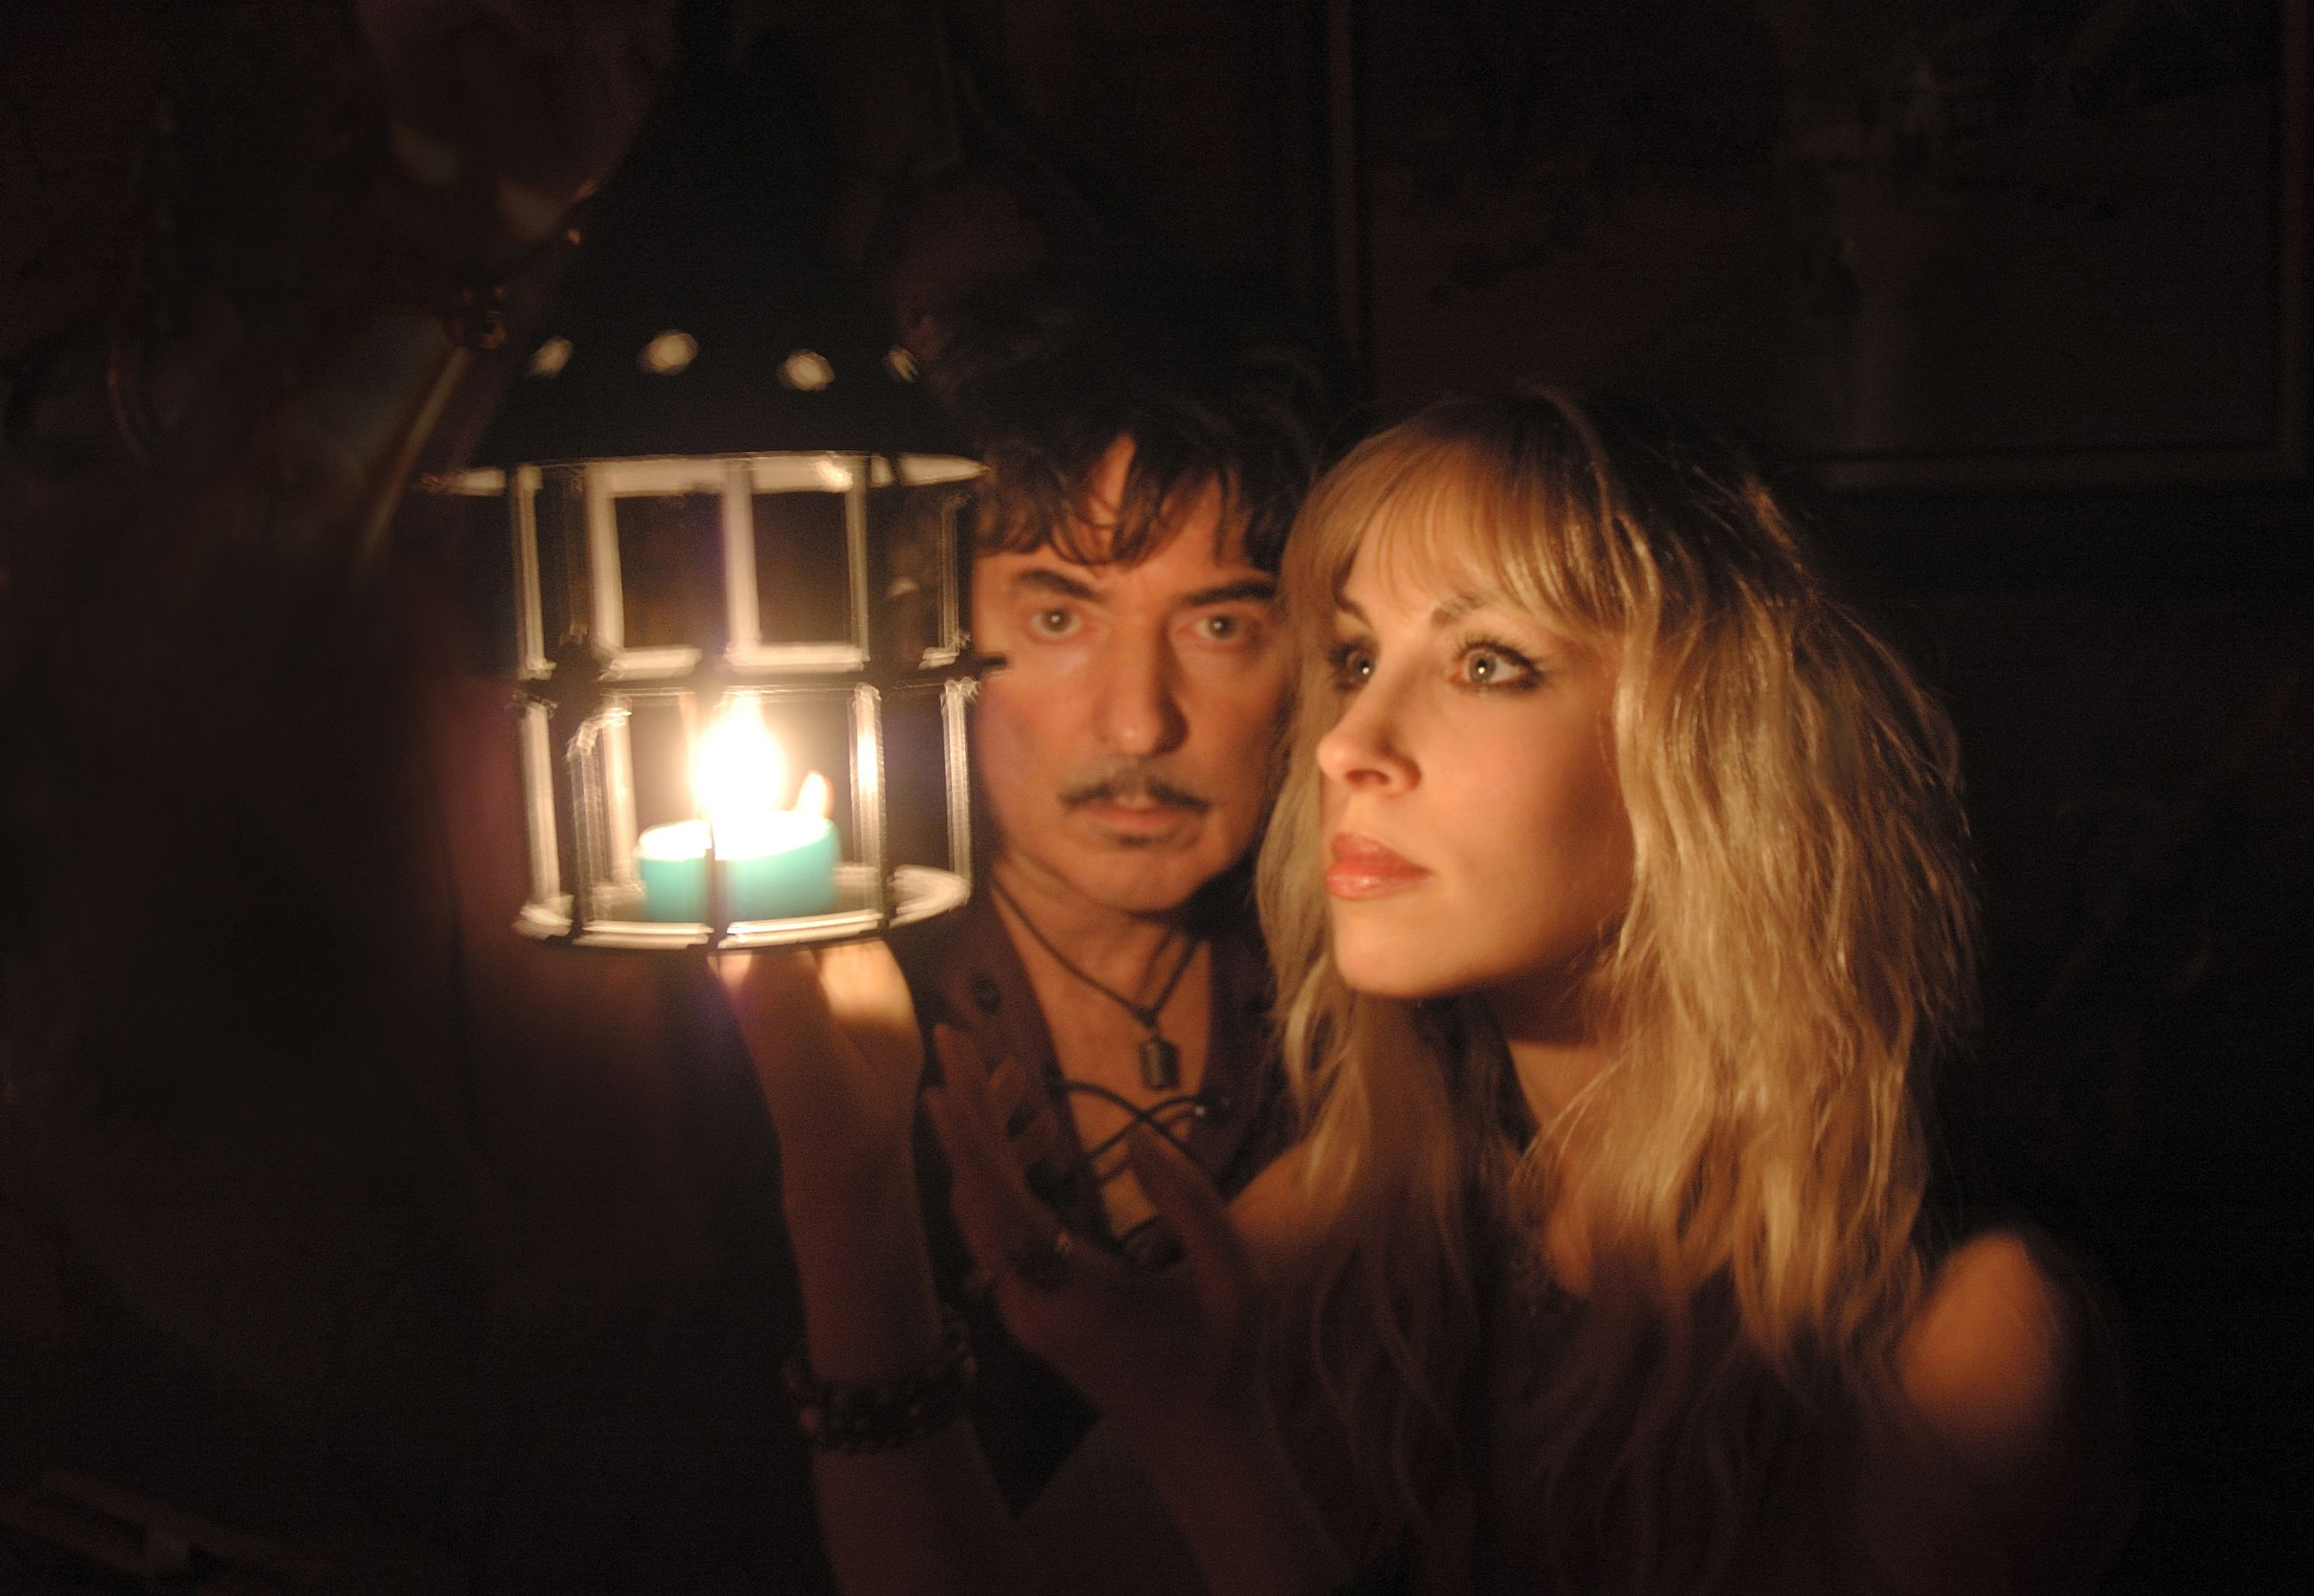 ritchie_and_candice_6.jpg (2683×1851)